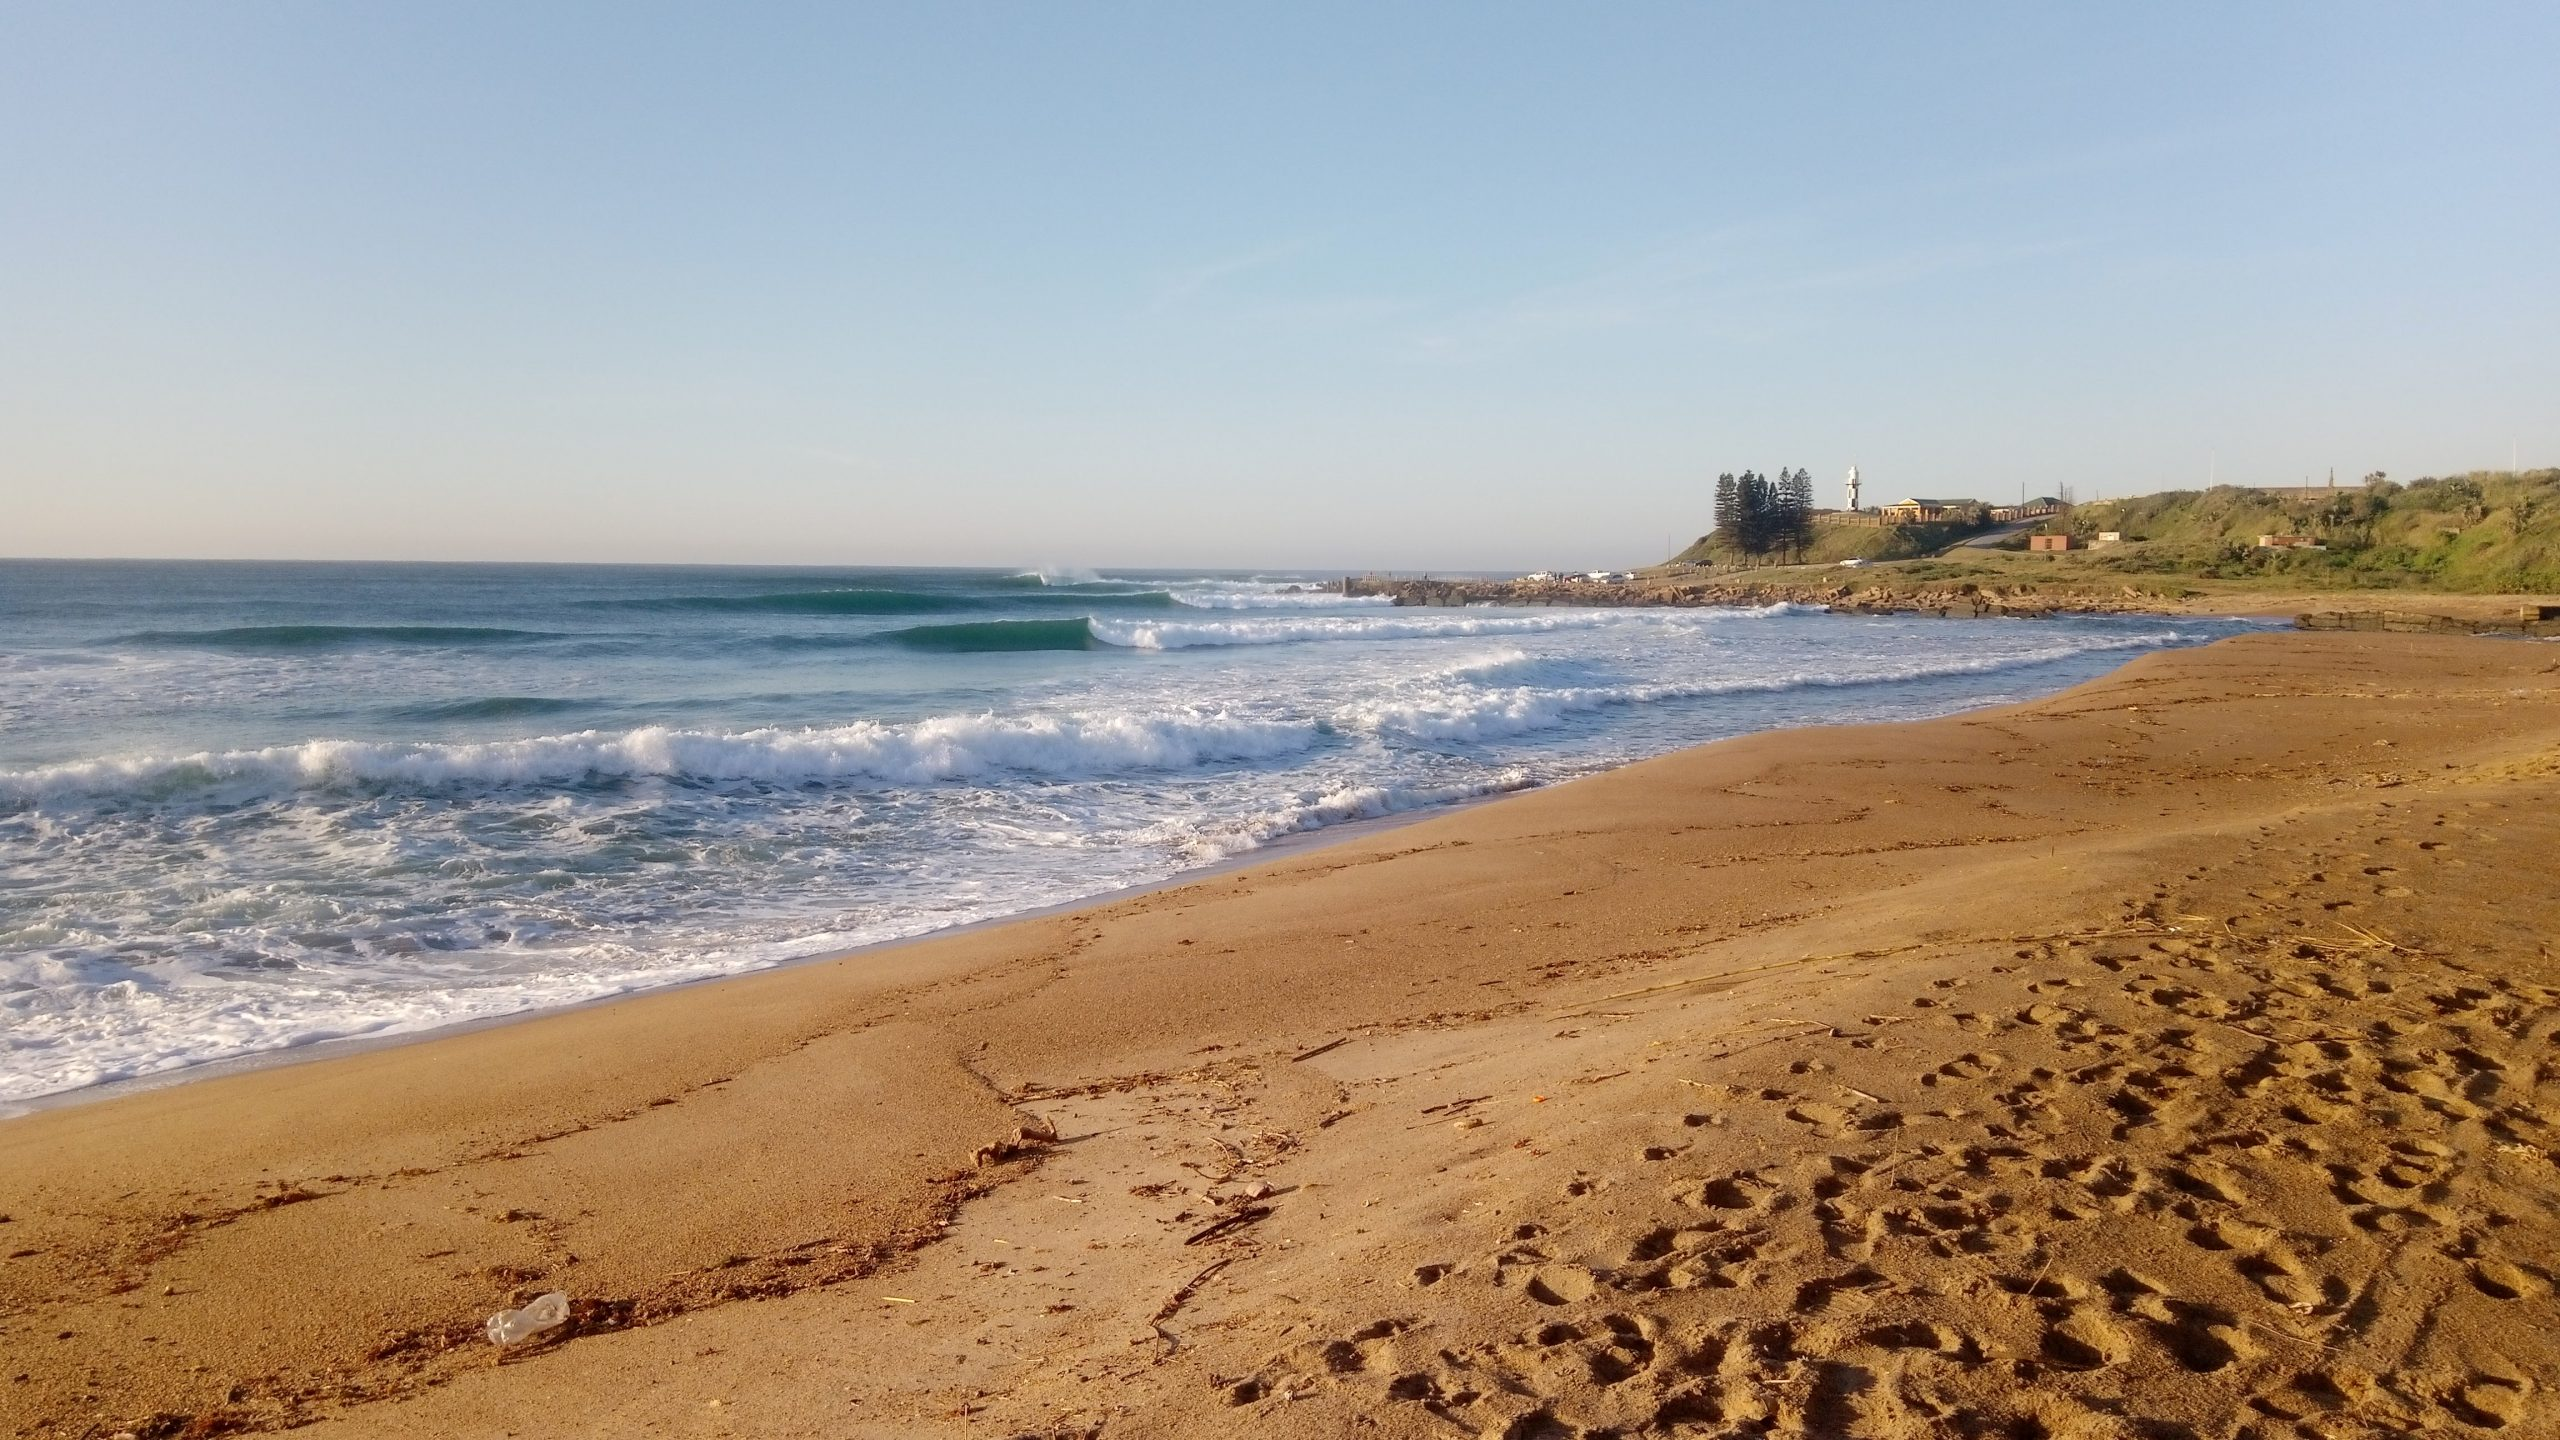 The world famous sandspit is a fantastic beach for fishing, exploring or just walking.